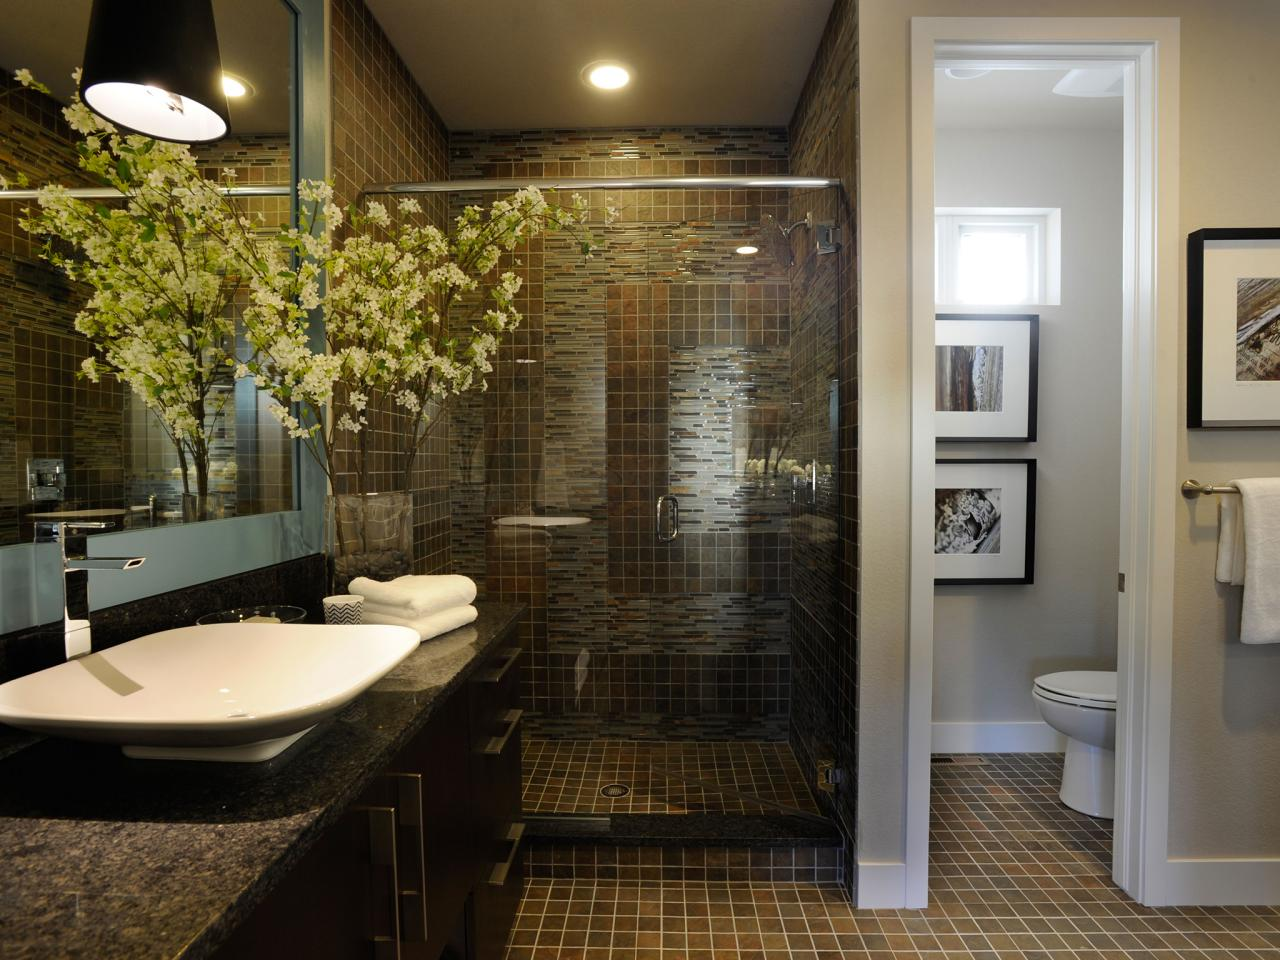 Charmant Upgrade Your Bathroom To A Home Spa